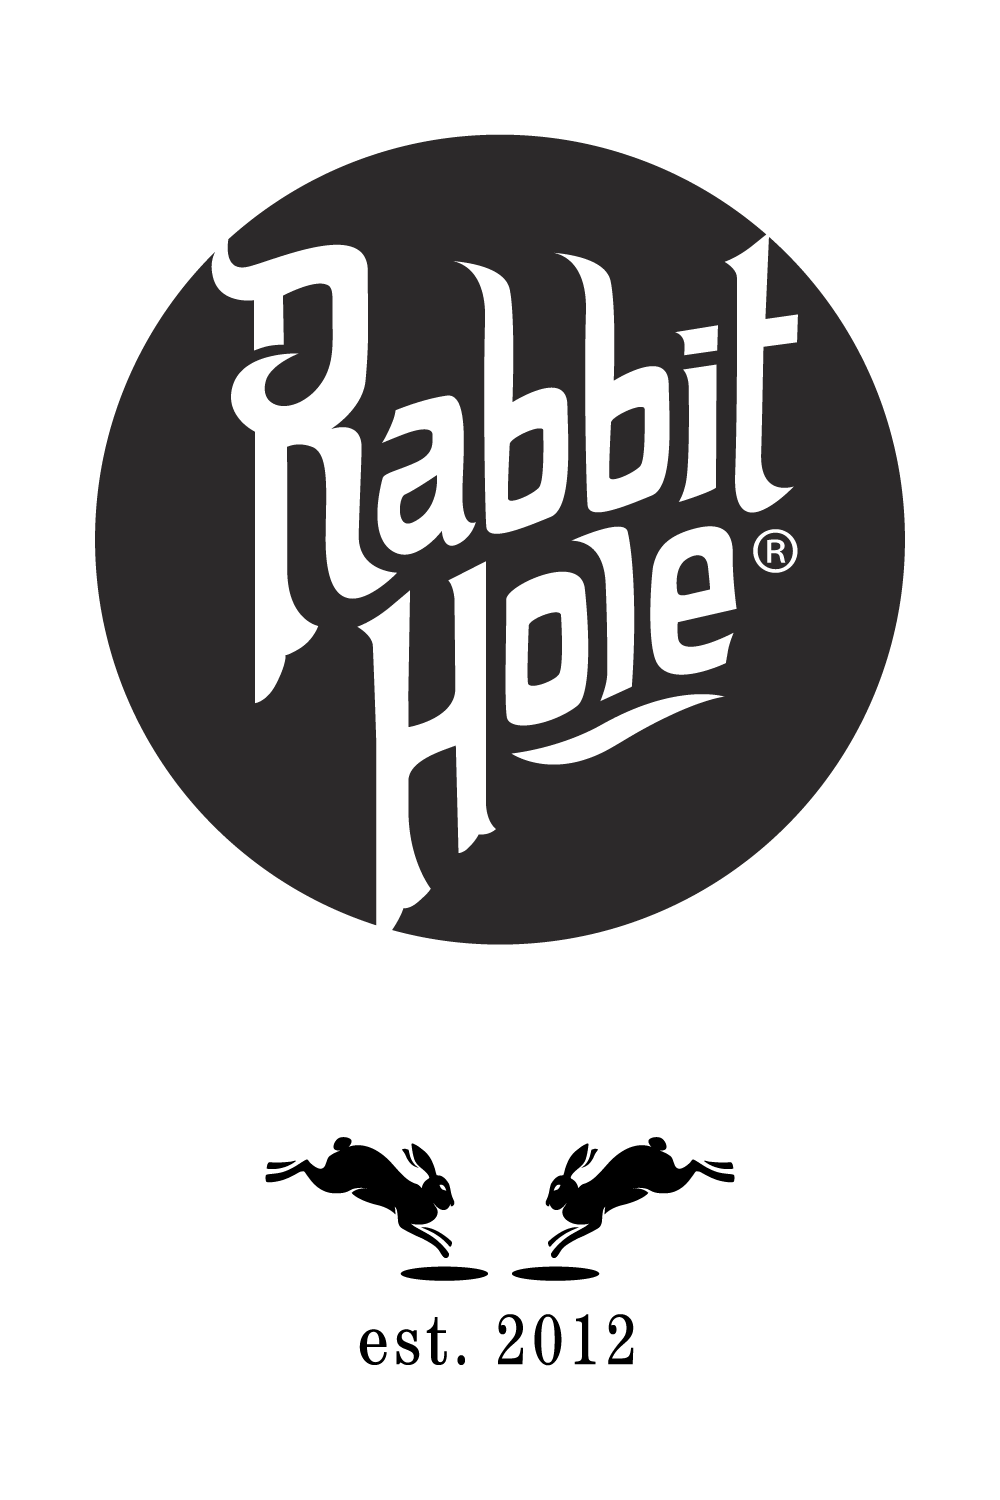 Rabbit Hole logo - Rabbit Hole to Premiere Mizunara Founder's Collection 15-Year-Old Cask Strength Kentucky Straight Bourbon Finished in Japanese Oak